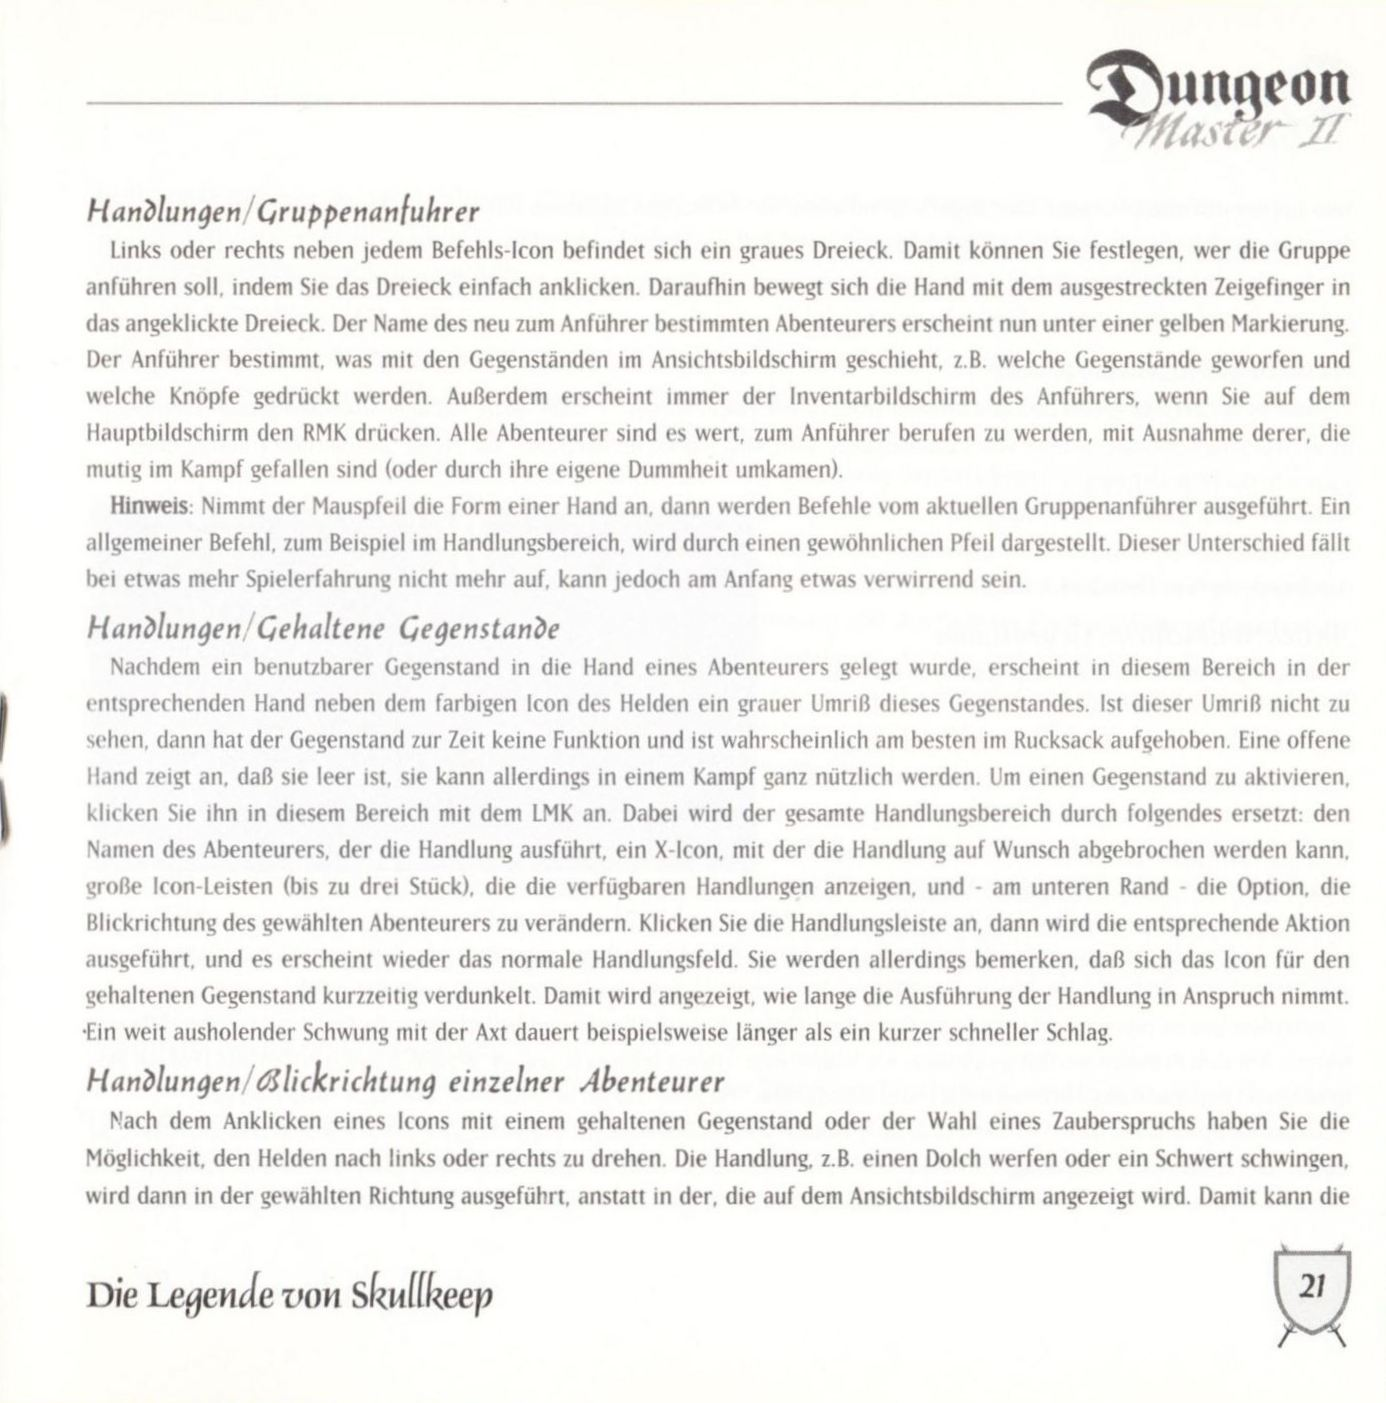 Game - Dungeon Master II - DE - PC - Blackmarket With Booklet - Booklet - Page 023 - Scan